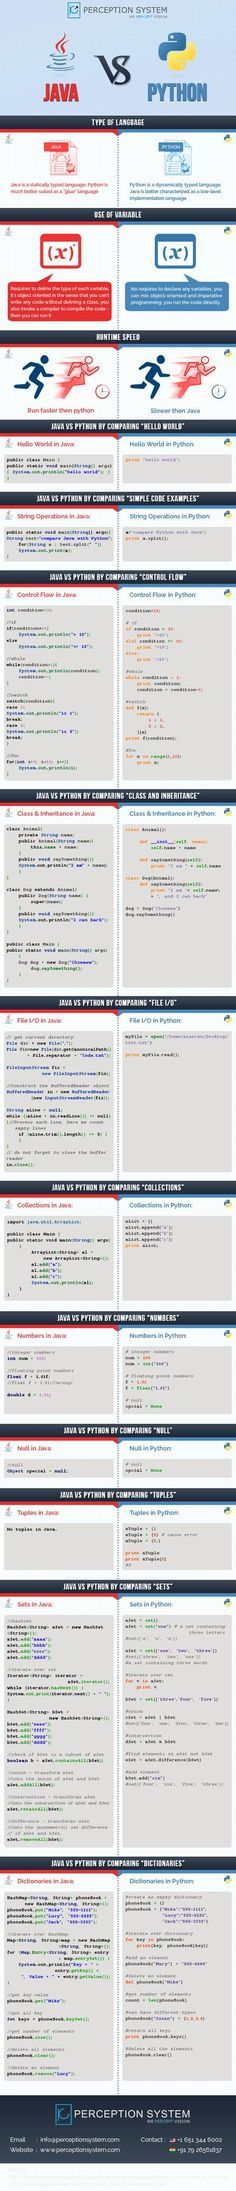 Java Vs. Python- Which Programming Language is More Productive?... #java #python #infographic